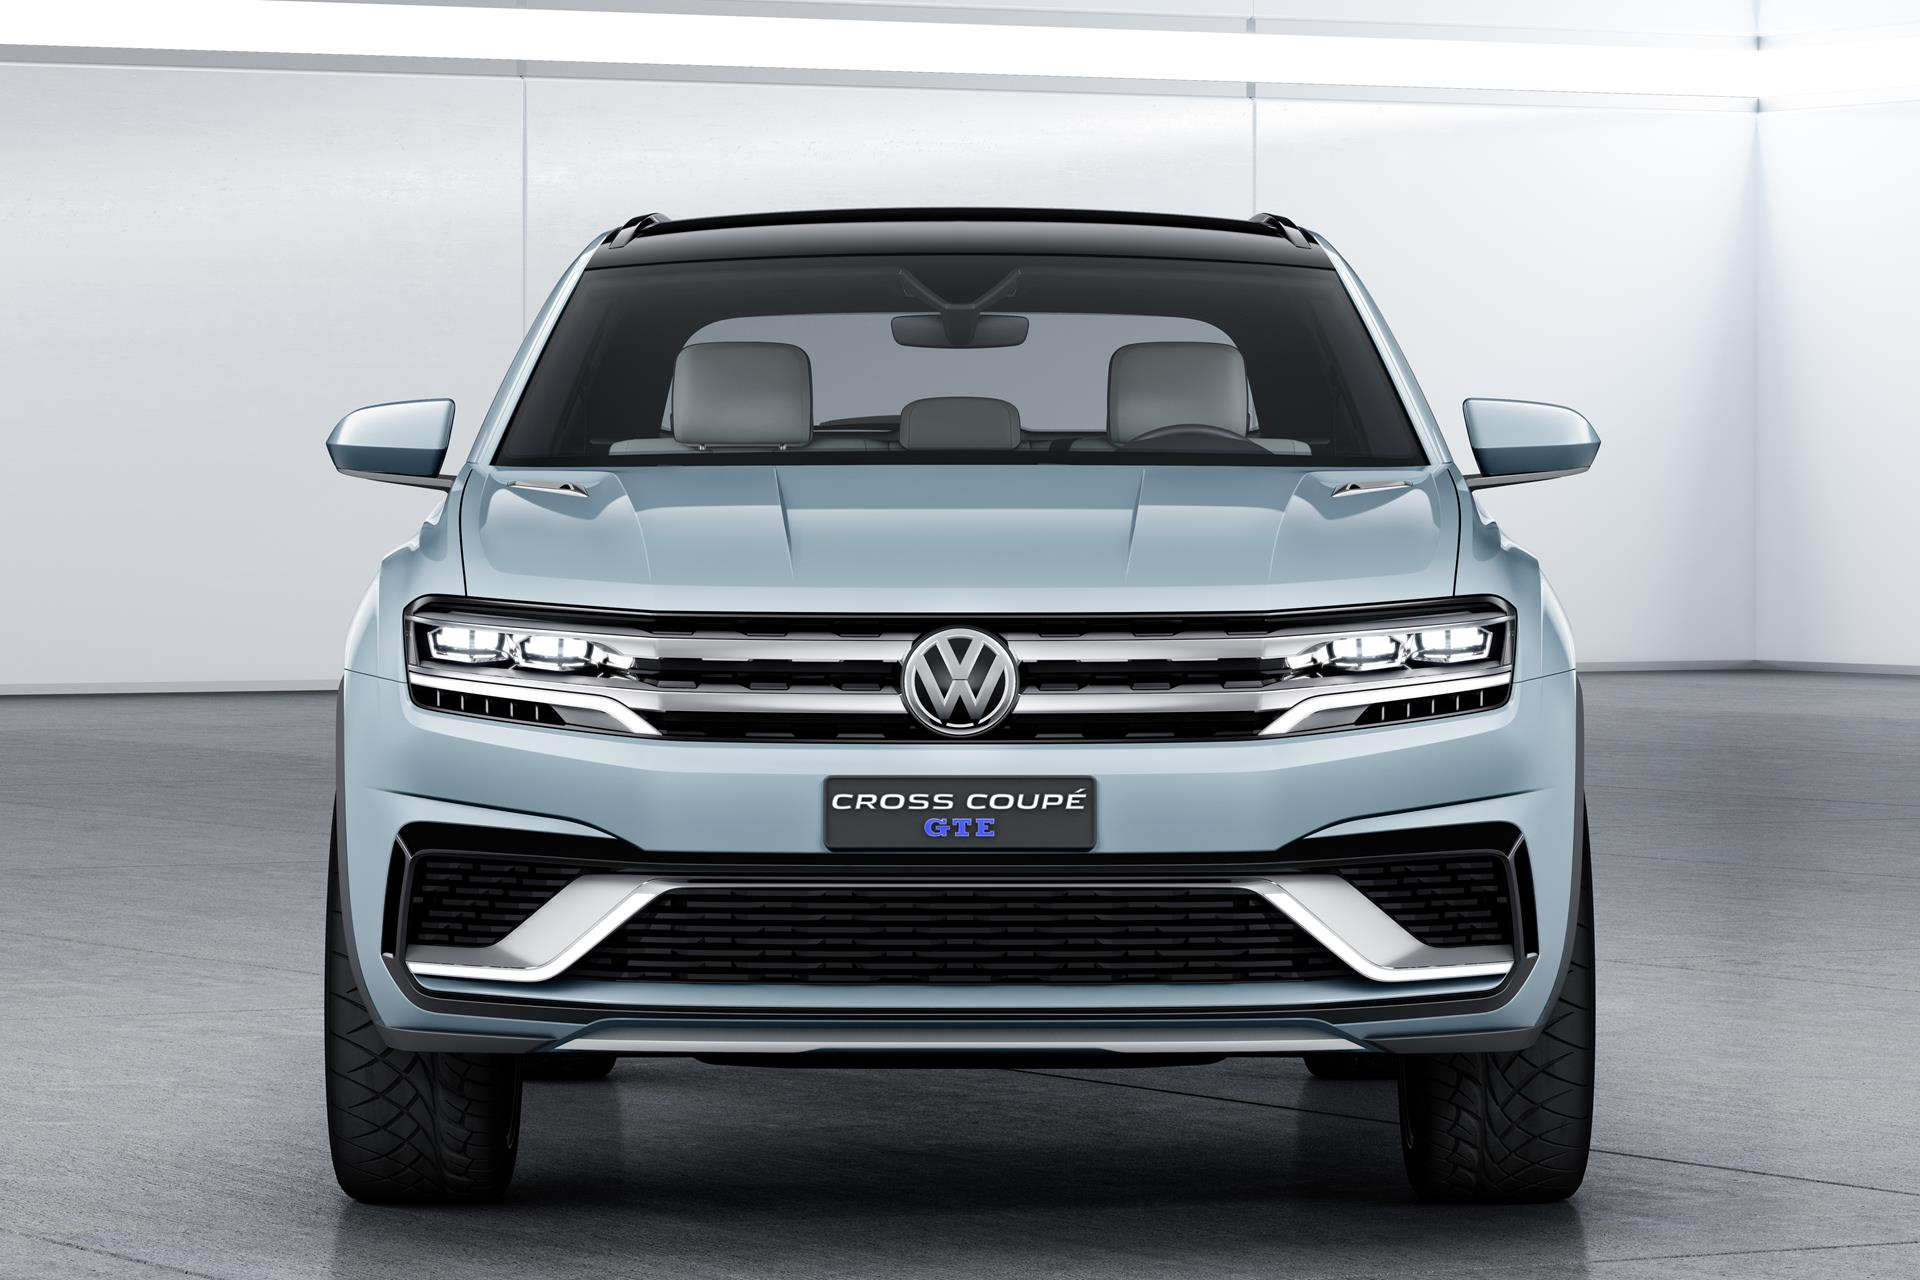 2015 Volkswagen Cross Coupe GTE News and Information